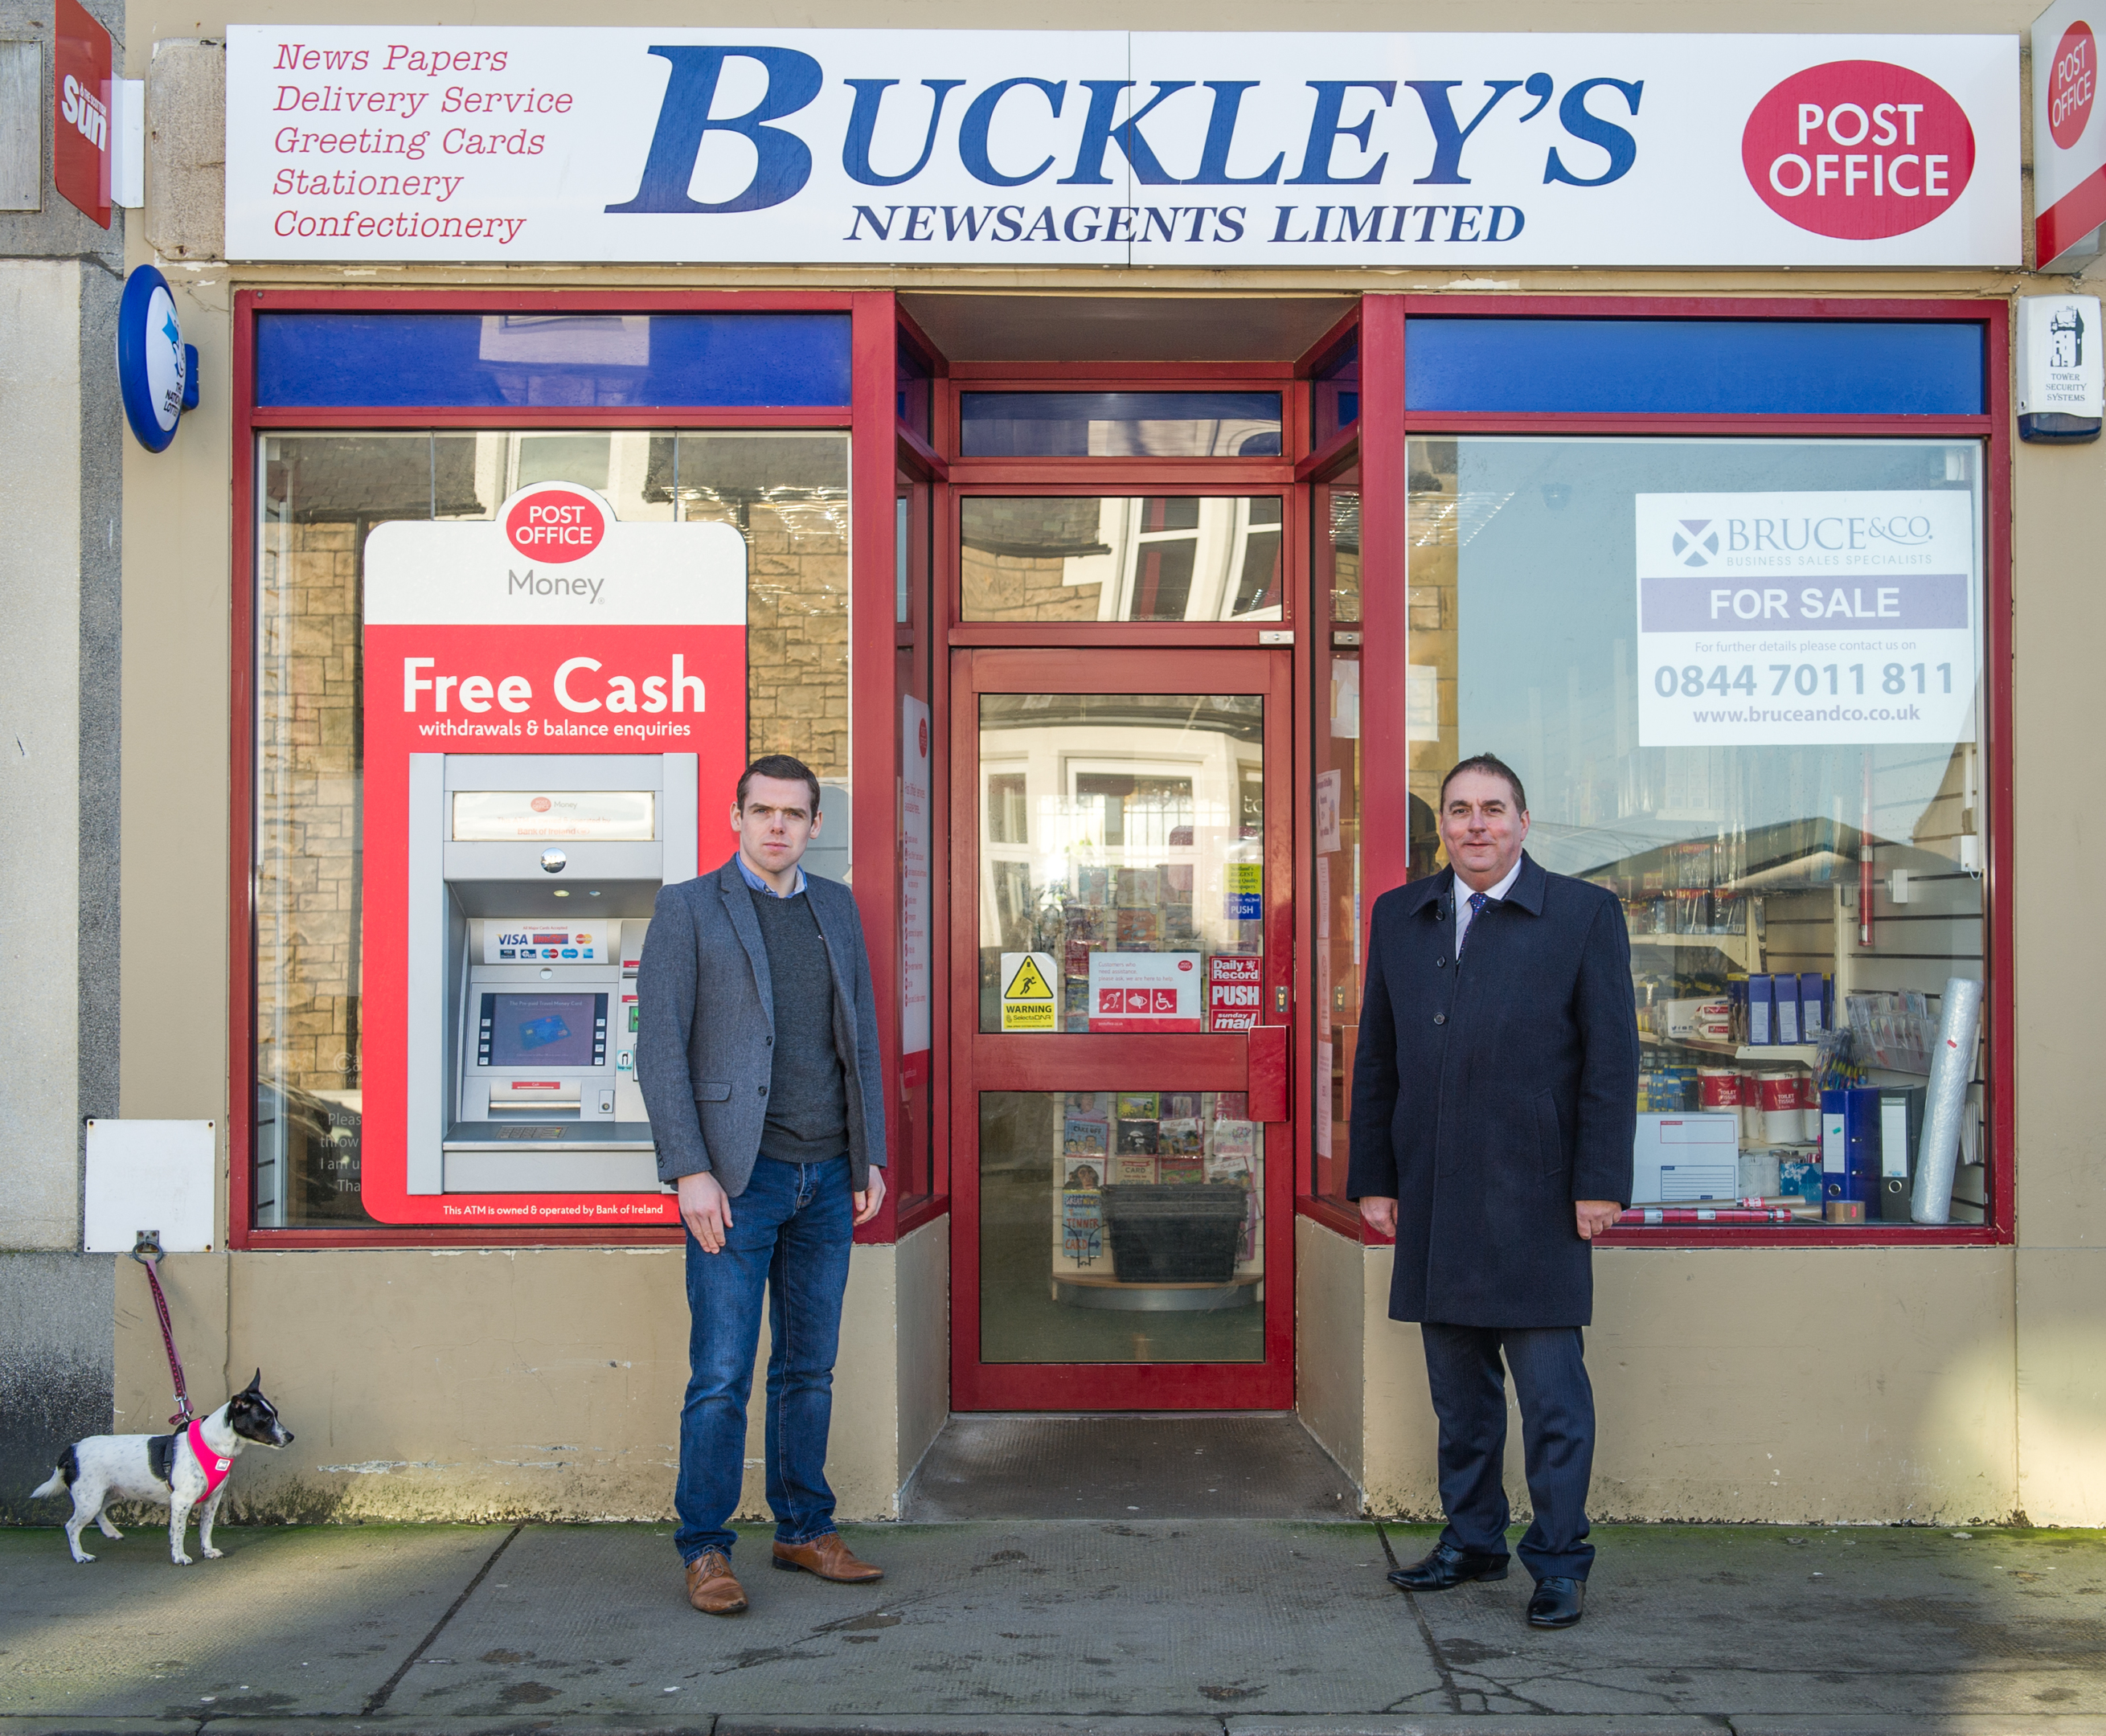 Pictures by JASON HEDGES Pictures show Douglas Ross ( MP) (Left) and James Allan (right) Heldon & Laich outside of the cash machine at Buckleys.